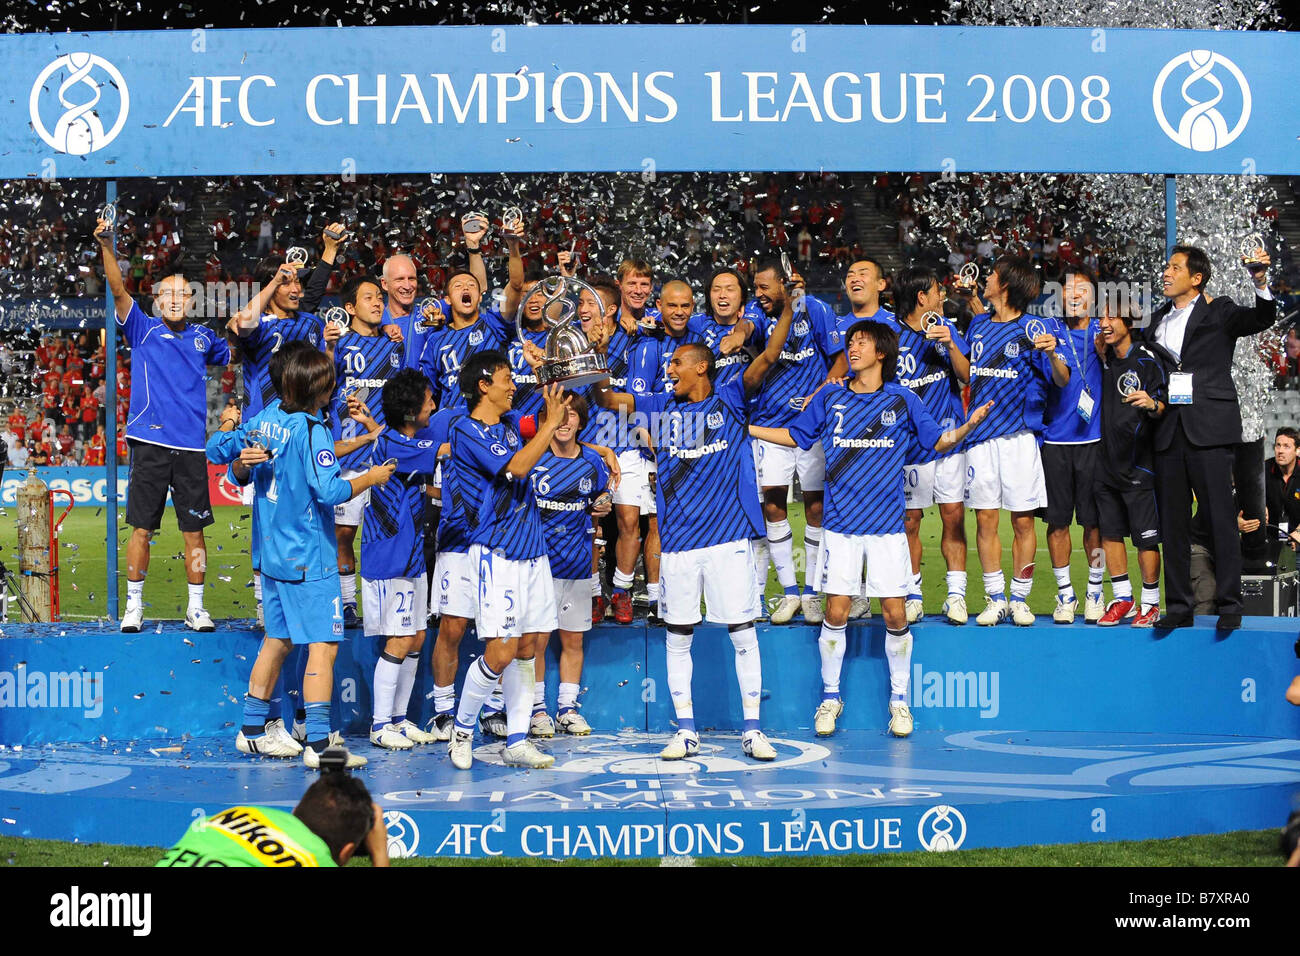 Gamba Osaka Team Group November 12 2008 Football Afc Champions League Stock Photo Alamy